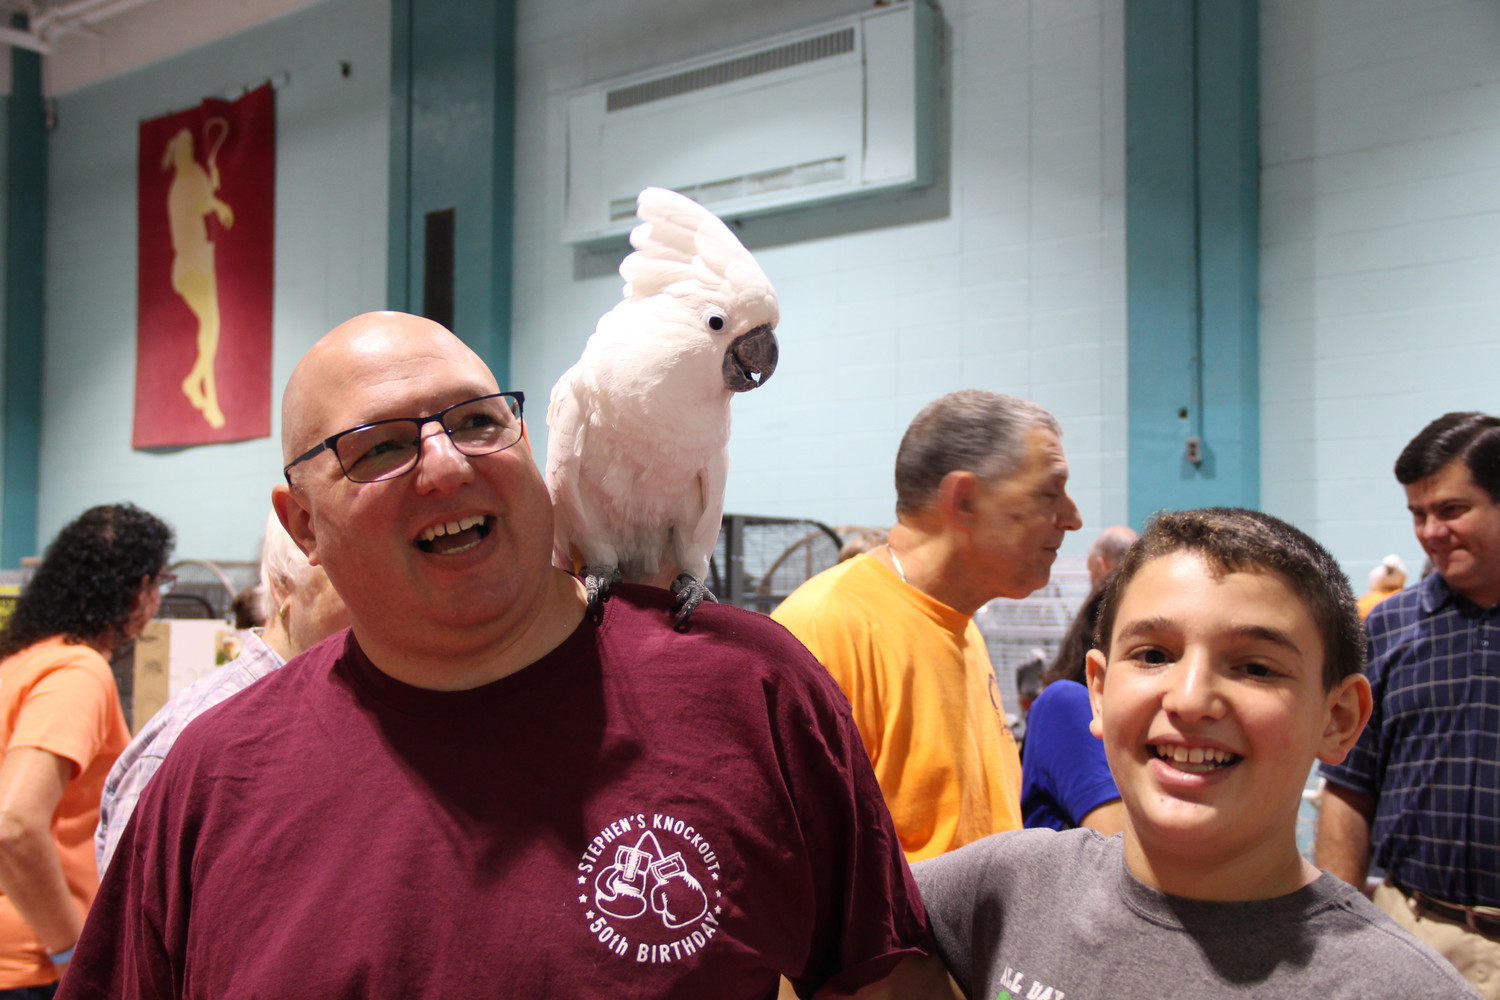 Steven Seligson and his son Ethan had fun with Zachary the cockatoo during the Parrot Expo on Saturday at the Freeport Recreation Center.